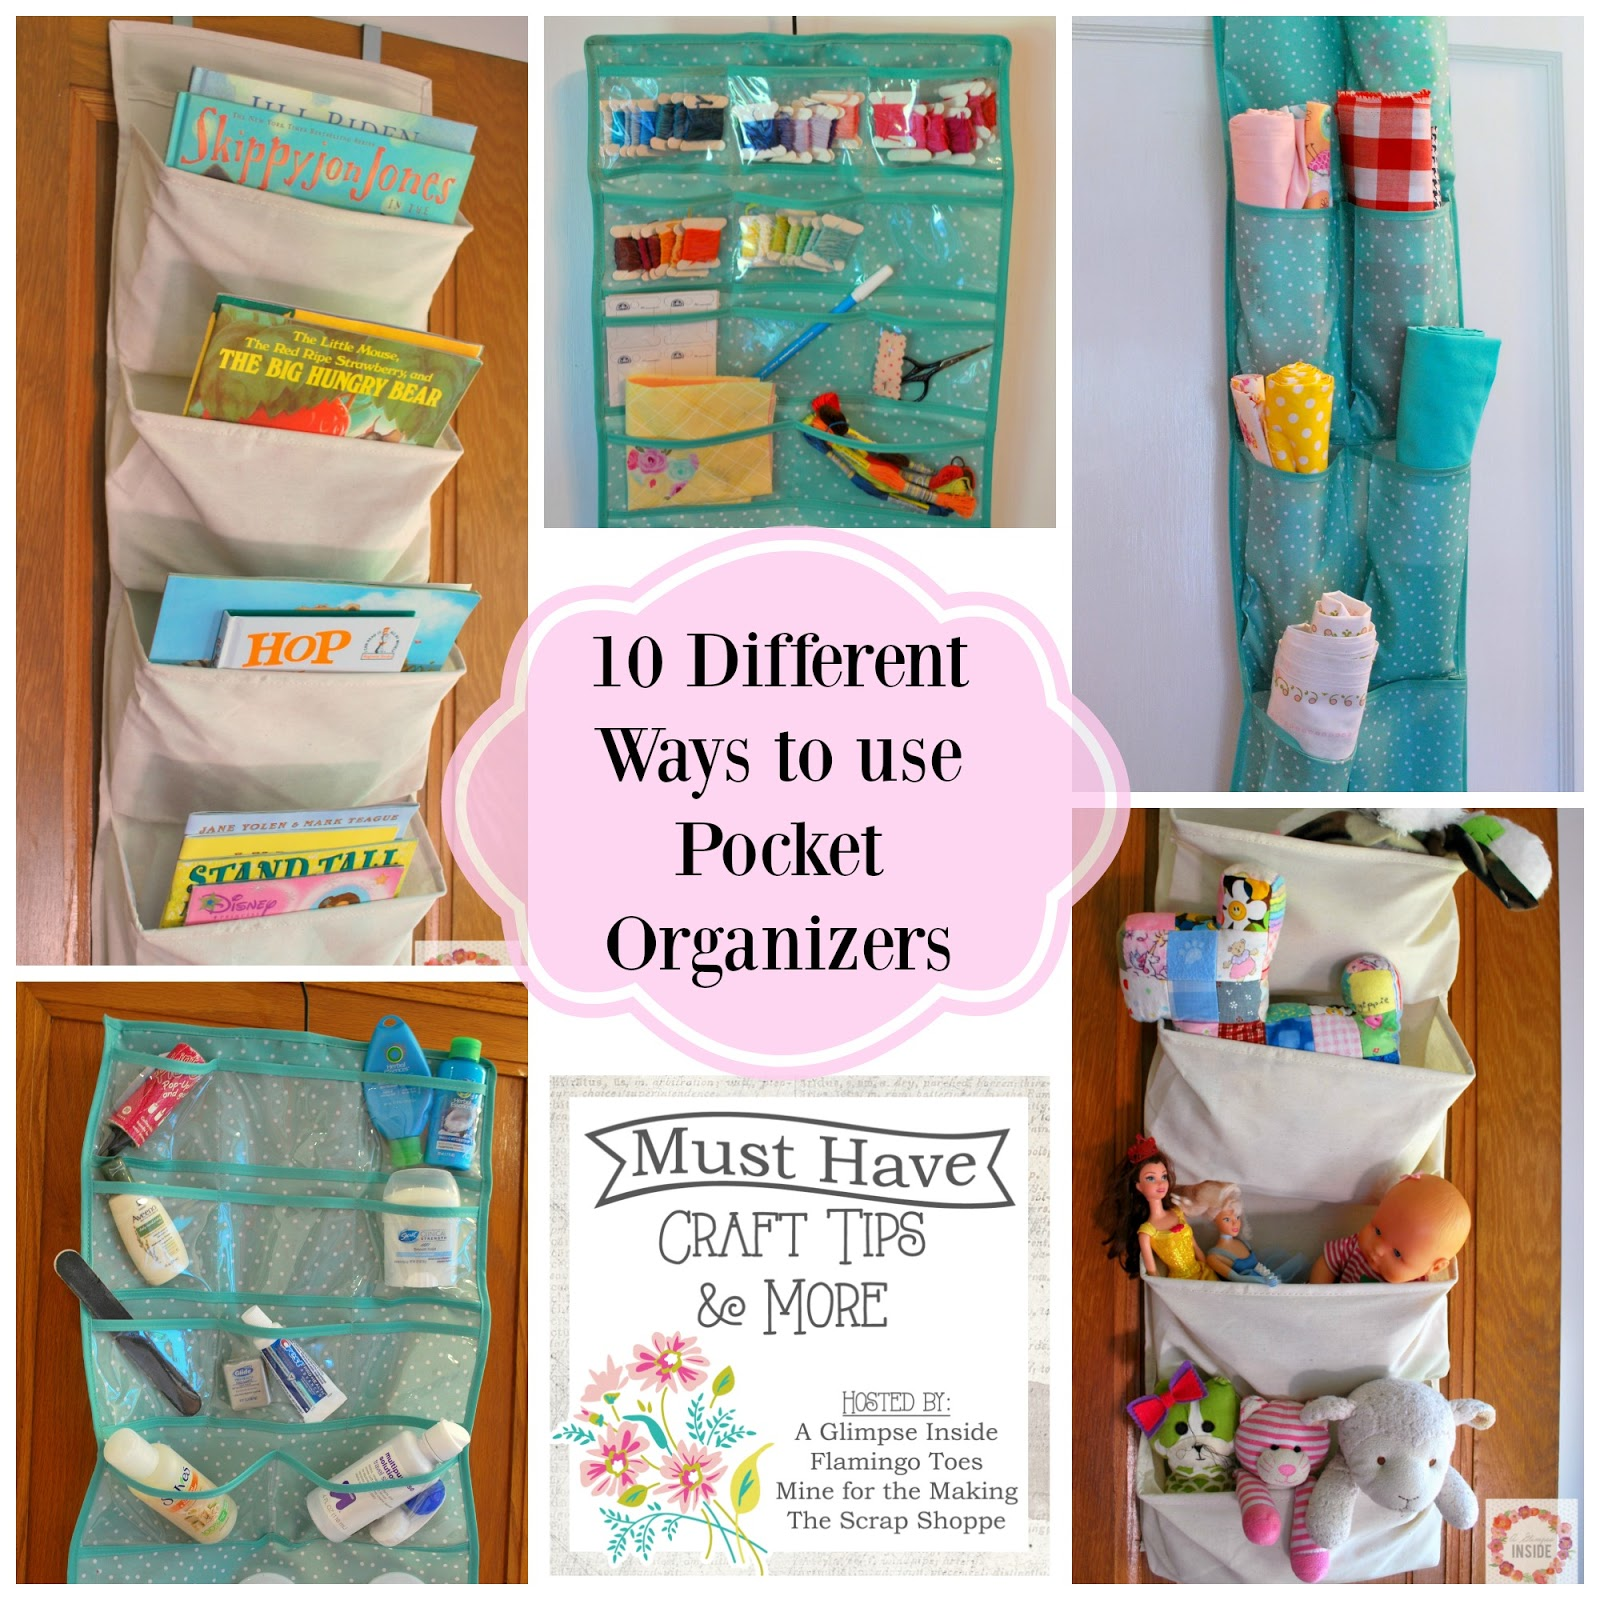 http://www.aglimpseinsideblog.com/2016/06/mhct-organization-10-ways-to-use-pocket.html